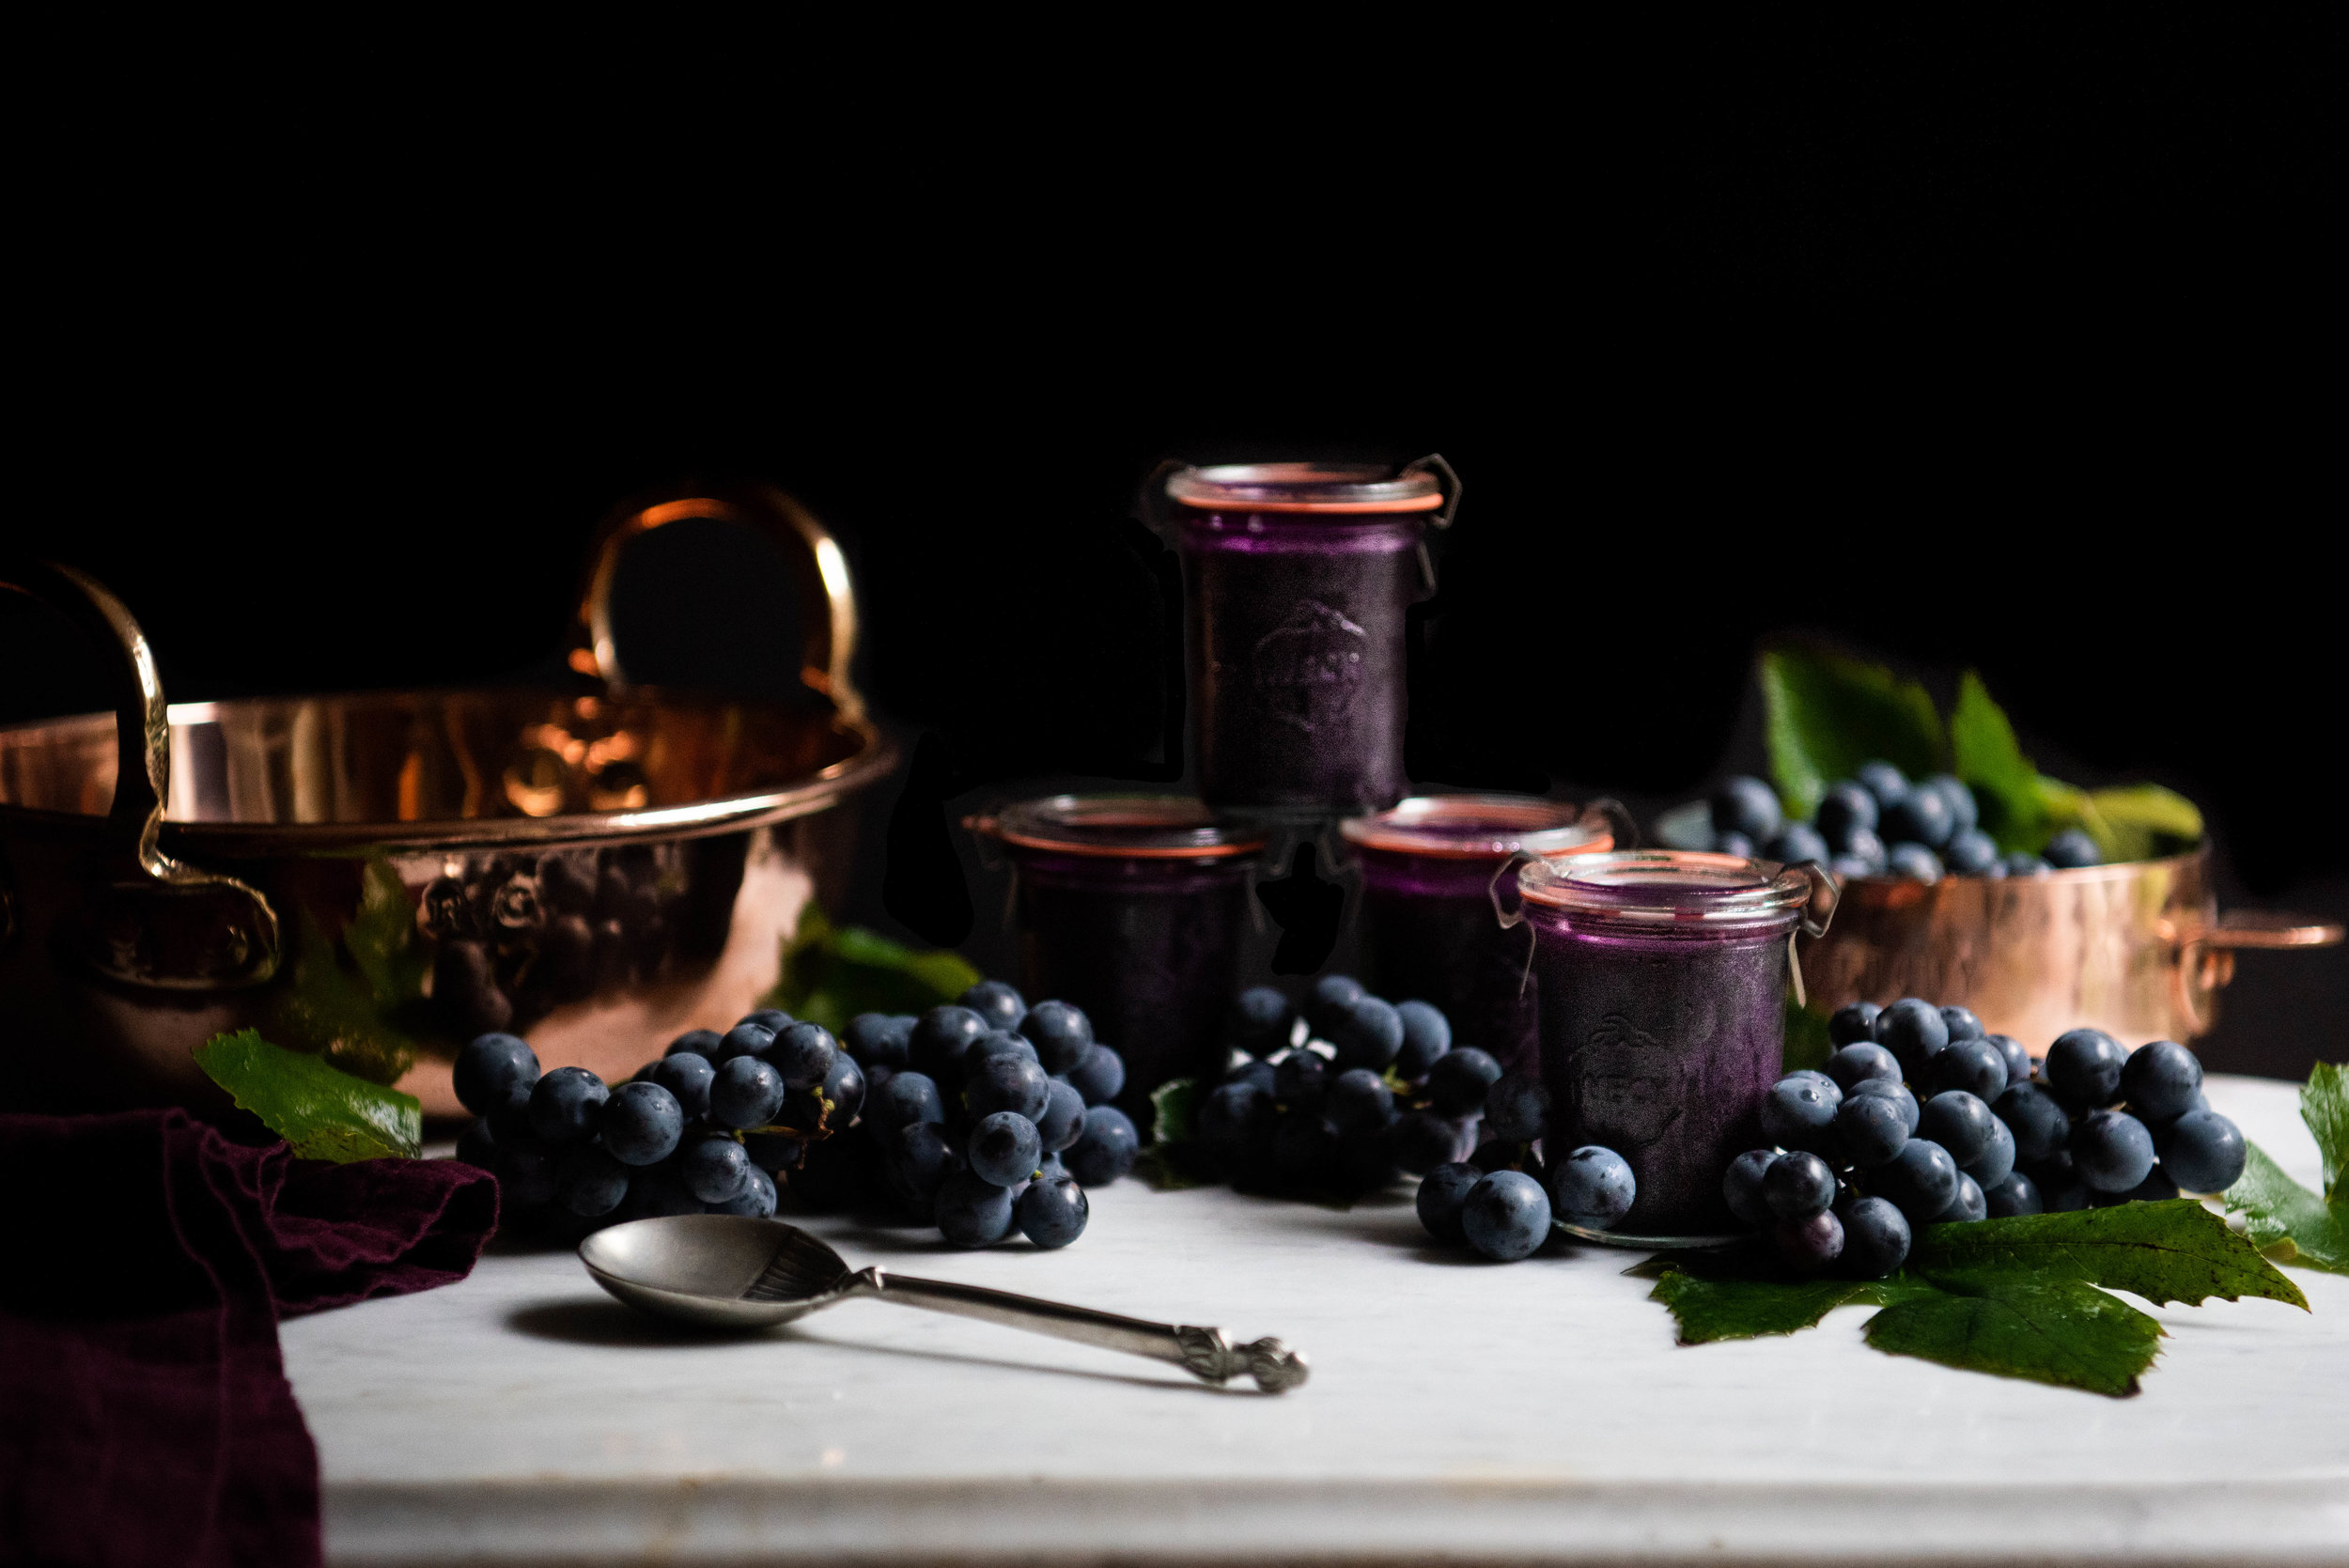 Concord Grape Jelly - This is a grown up grape jelly—not cloyingly sweet, gem toned, mildly tart, and the texture of velvet on the tongue. It is one of the simplest recipes in the world, yet complex it its depth of flavor. Intensely aromatic, the Concord grape dates back to the mid 19th century where among his neighbors Ralph Waldo Emerson, Henry David Thoreau, Nathaniel Hawthorn, and the Alcott family, a farmer began experimenting with grape seeds from some native species in search of the perfect grape. This horticulture endeavor lead Ephraim Wales Bull to plant more than 22,000 seedlings before he was satisfied that he had cultivated a full-bodied grape that would thrive in rugged New England soil, ripen early, and survive the frosts that killed European cuttings. While Mr. Bull developed the standard for grape taste, it is the dentist, Mr. Welch, that commercialized and profited from this native vine. He sold most of his first presses of the grape to churches to use during the sacrament, but soon decided to employ Louis Pasteur's pasteurization methods to stop fermentation and deliver a safe, mass marketed non-alcoholic juice to the market.Wildly popular, Mr Welch continued with his kitchen science experiments and in 1918 produced World War I jam rations for American soldiers. It was, however, during World War II that one of the classic and most beloved of all childhood lunches came to be—the PB&J was invented as a means of providing troops with more nutrition in the form of inexpensive nut protein. Dr. Welch's Concord jam became the standard by which all peanut butter and jelly combinations are measured even today. Try this less sweet, no additive homemade jelly on baked brie, grilled cheese made with cheddar or fontina, pork and duck plates, PB & J's, or vanilla ice cream. Only in season for a few weeks each fall, relish the opportunity to make your own preserves. Do preserve enough of this quintessential New England autumn harvest with friends and family.